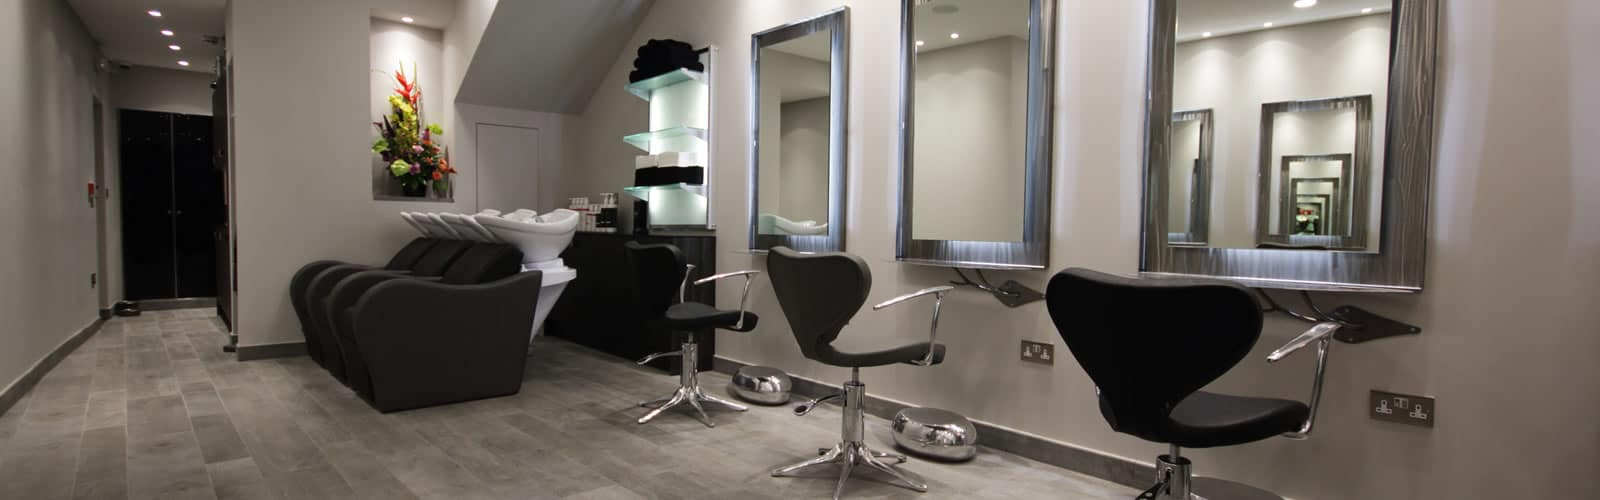 Hair salon enfield interior